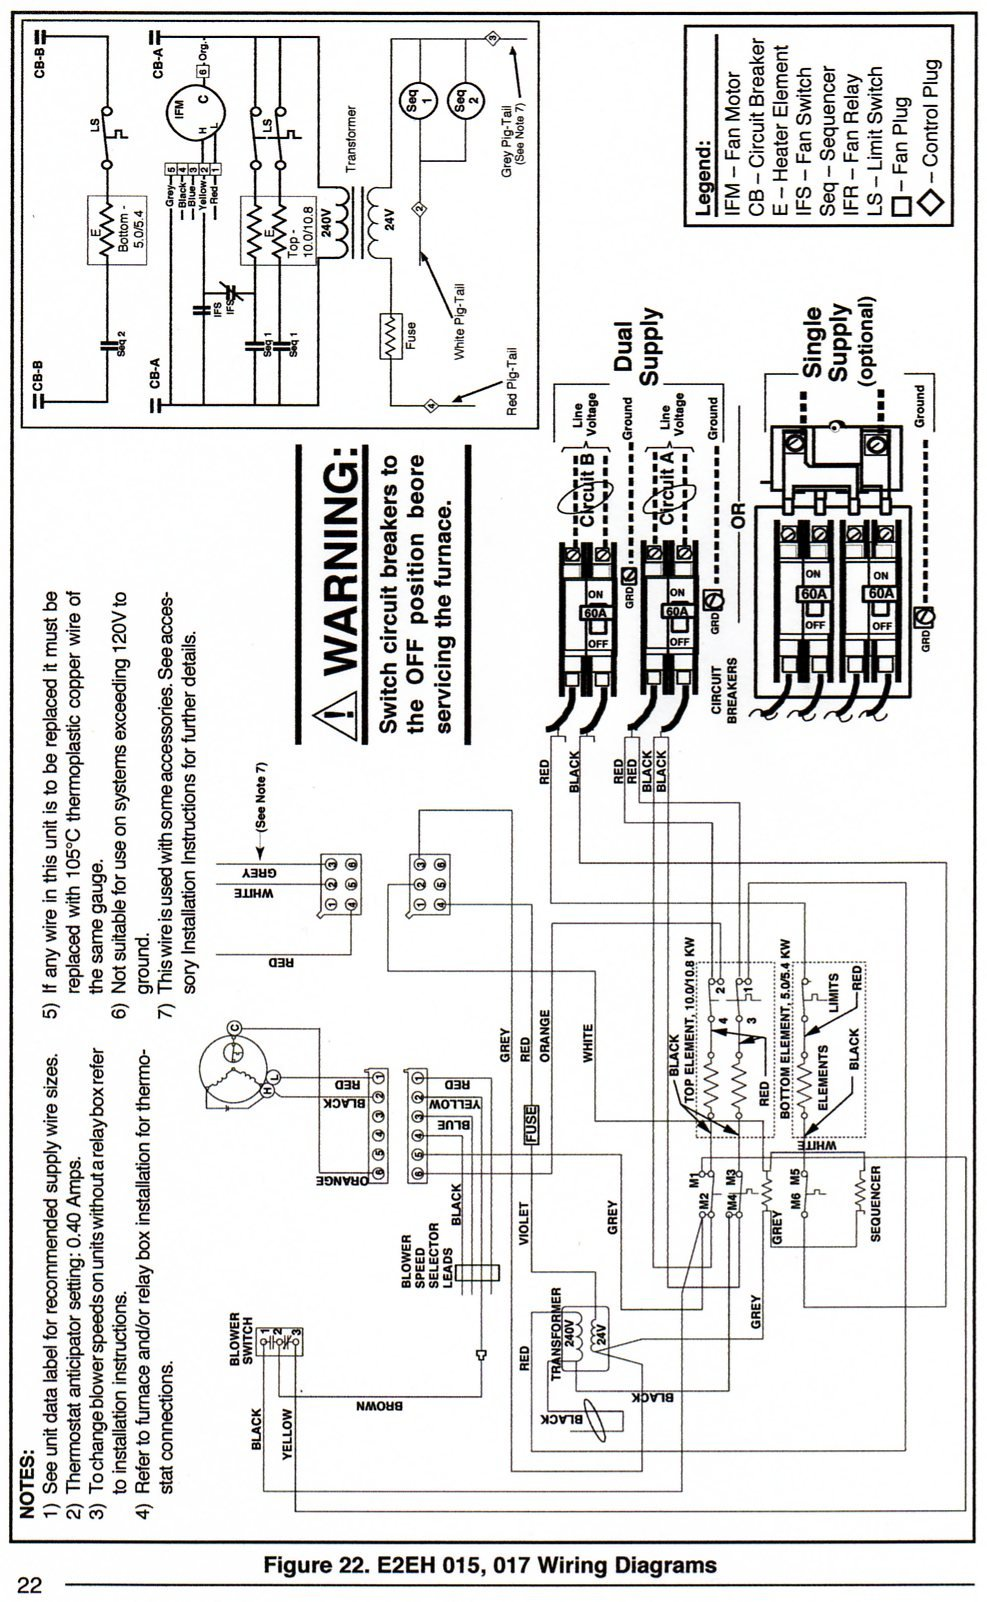 medium resolution of basic wiring for ga furnace